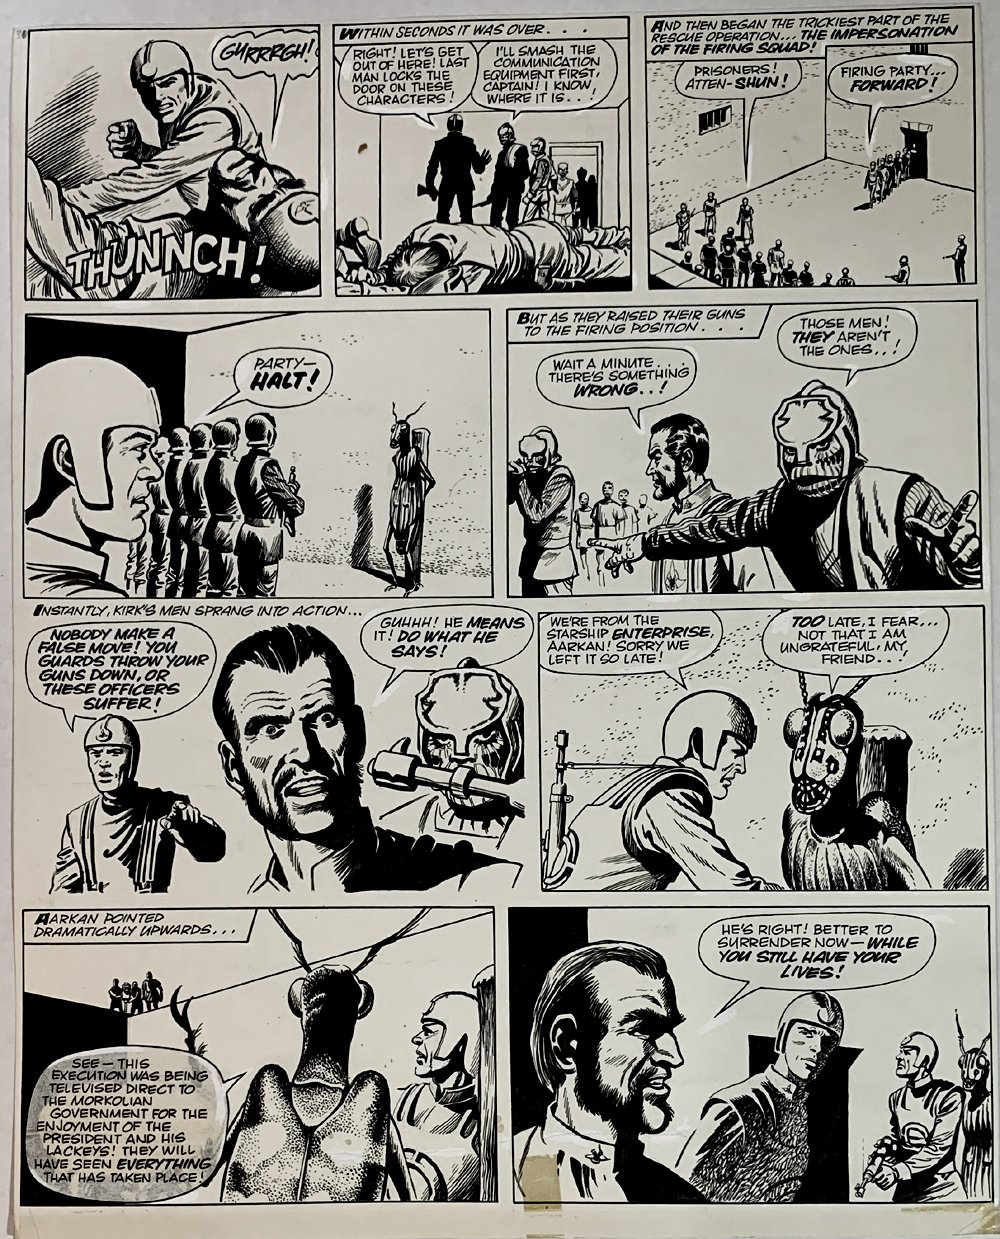 Star Trek Newspaper Strip 5-5-1973 (VERY LARGE)